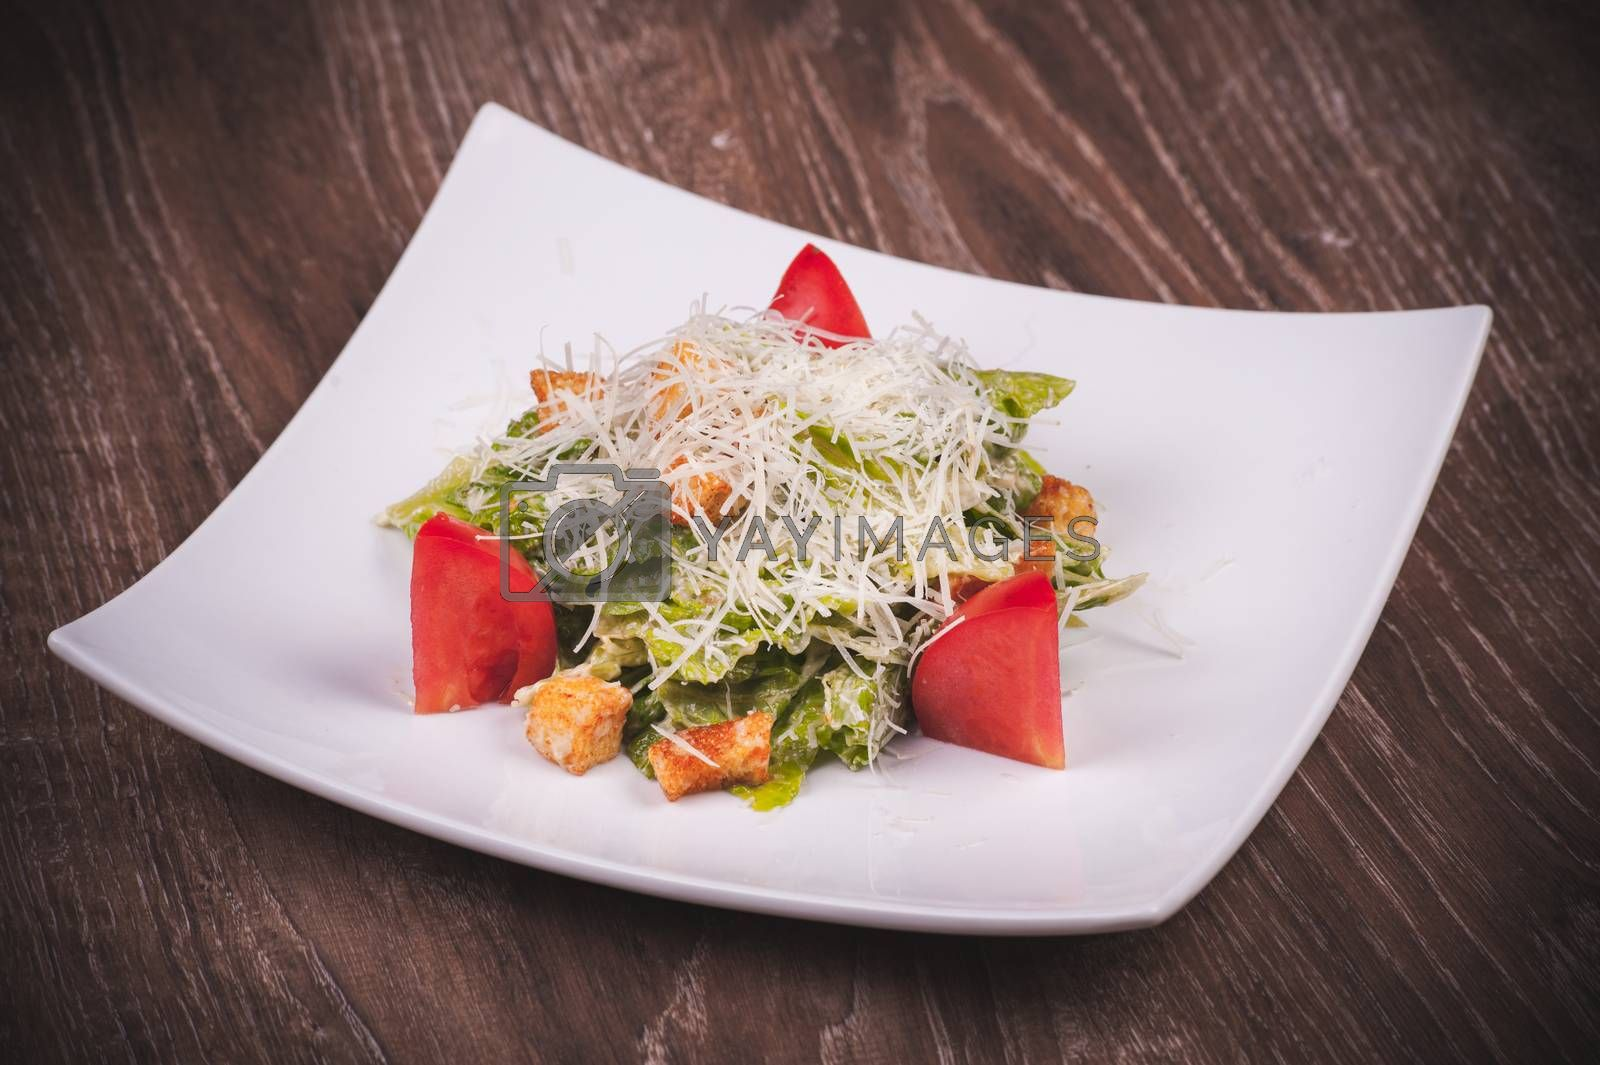 vegetarian cesar salad with tomato, croutons and cheese on white plate